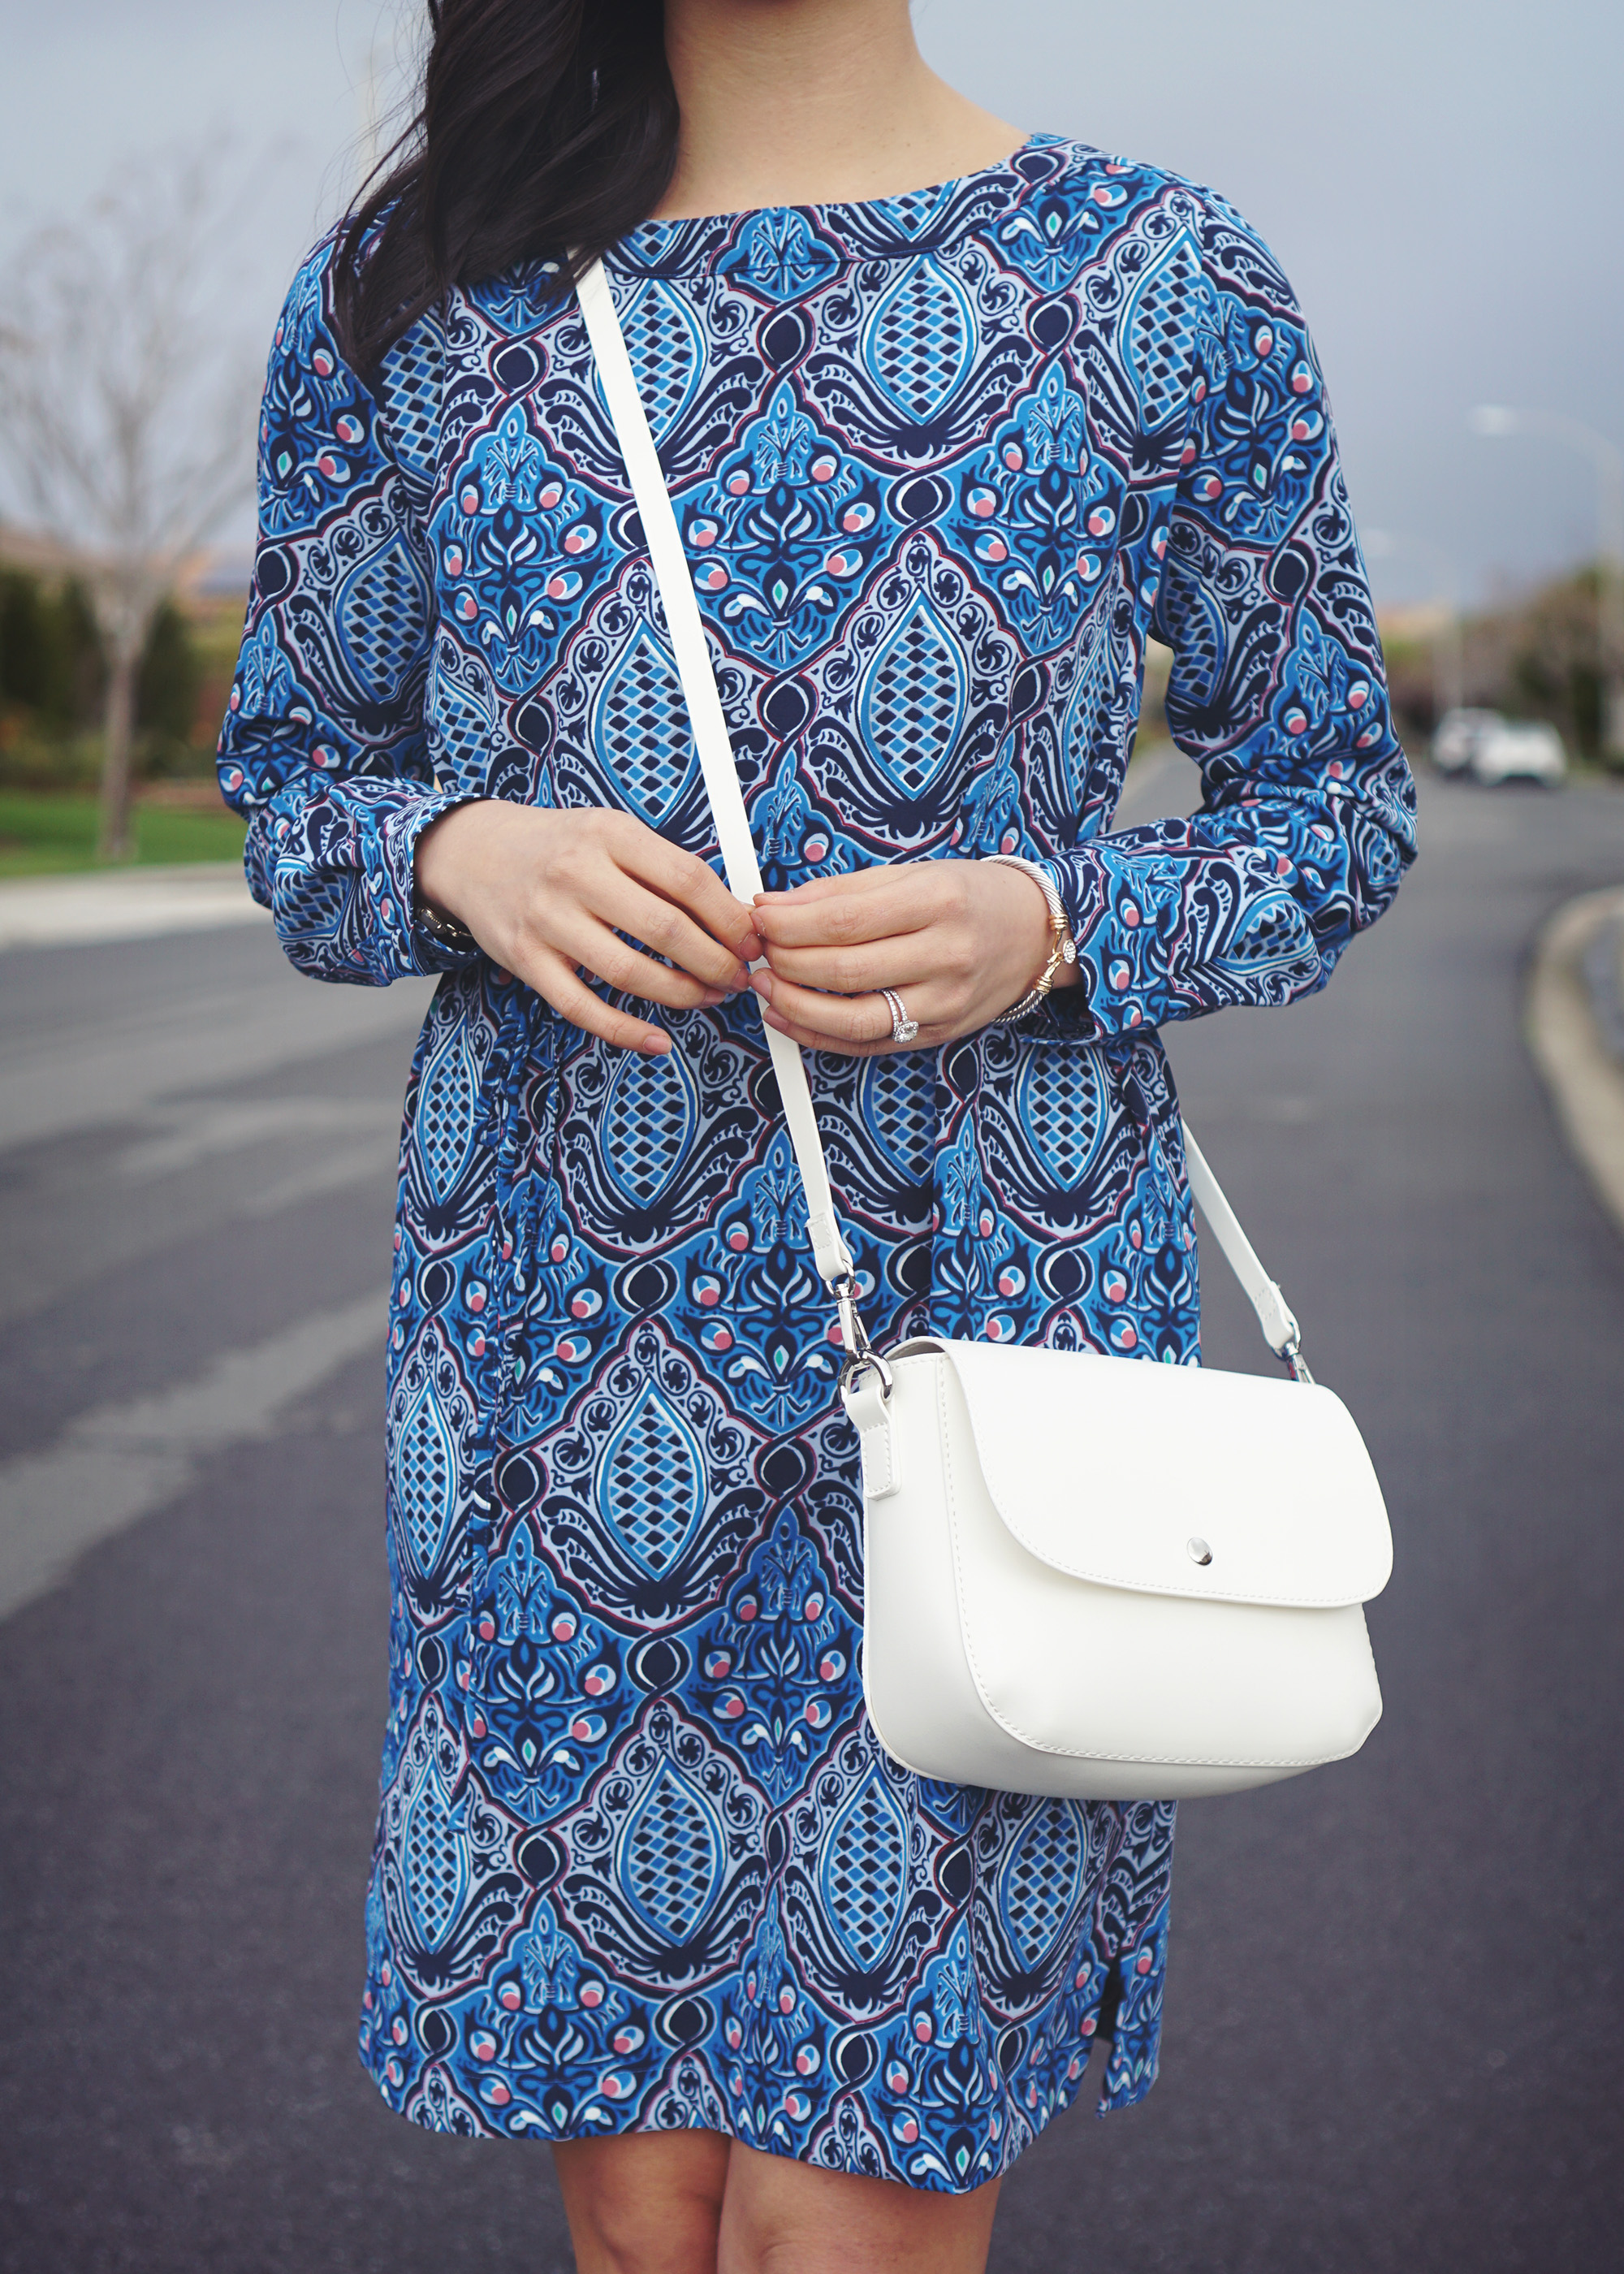 Skirt The Rules / White Crossbody Bag